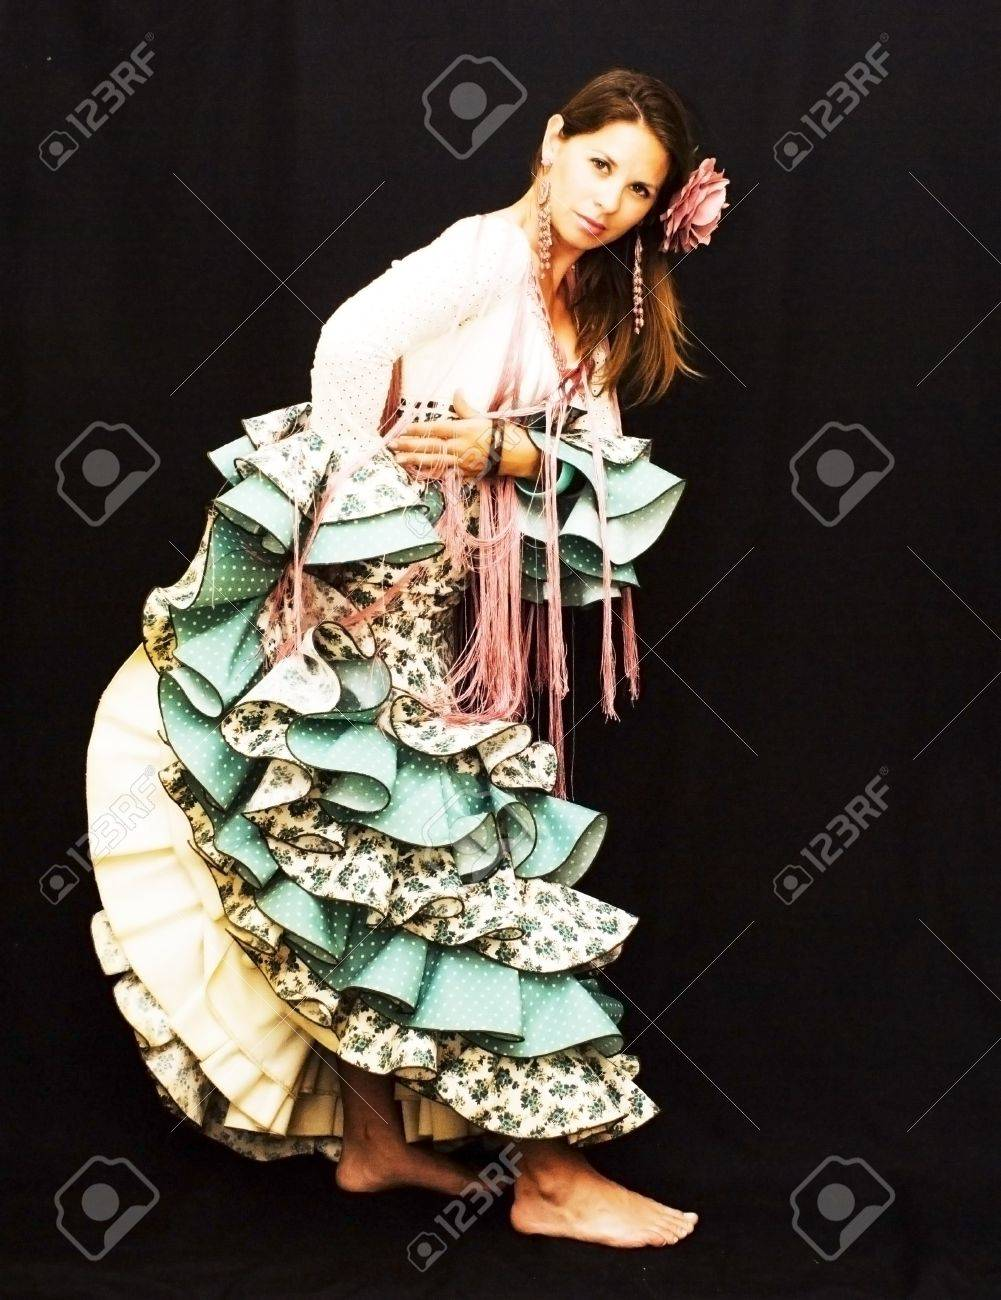 Beautiful young girl with typical dress of the city of Seville in Spain on black background Stock Photo - 19406712